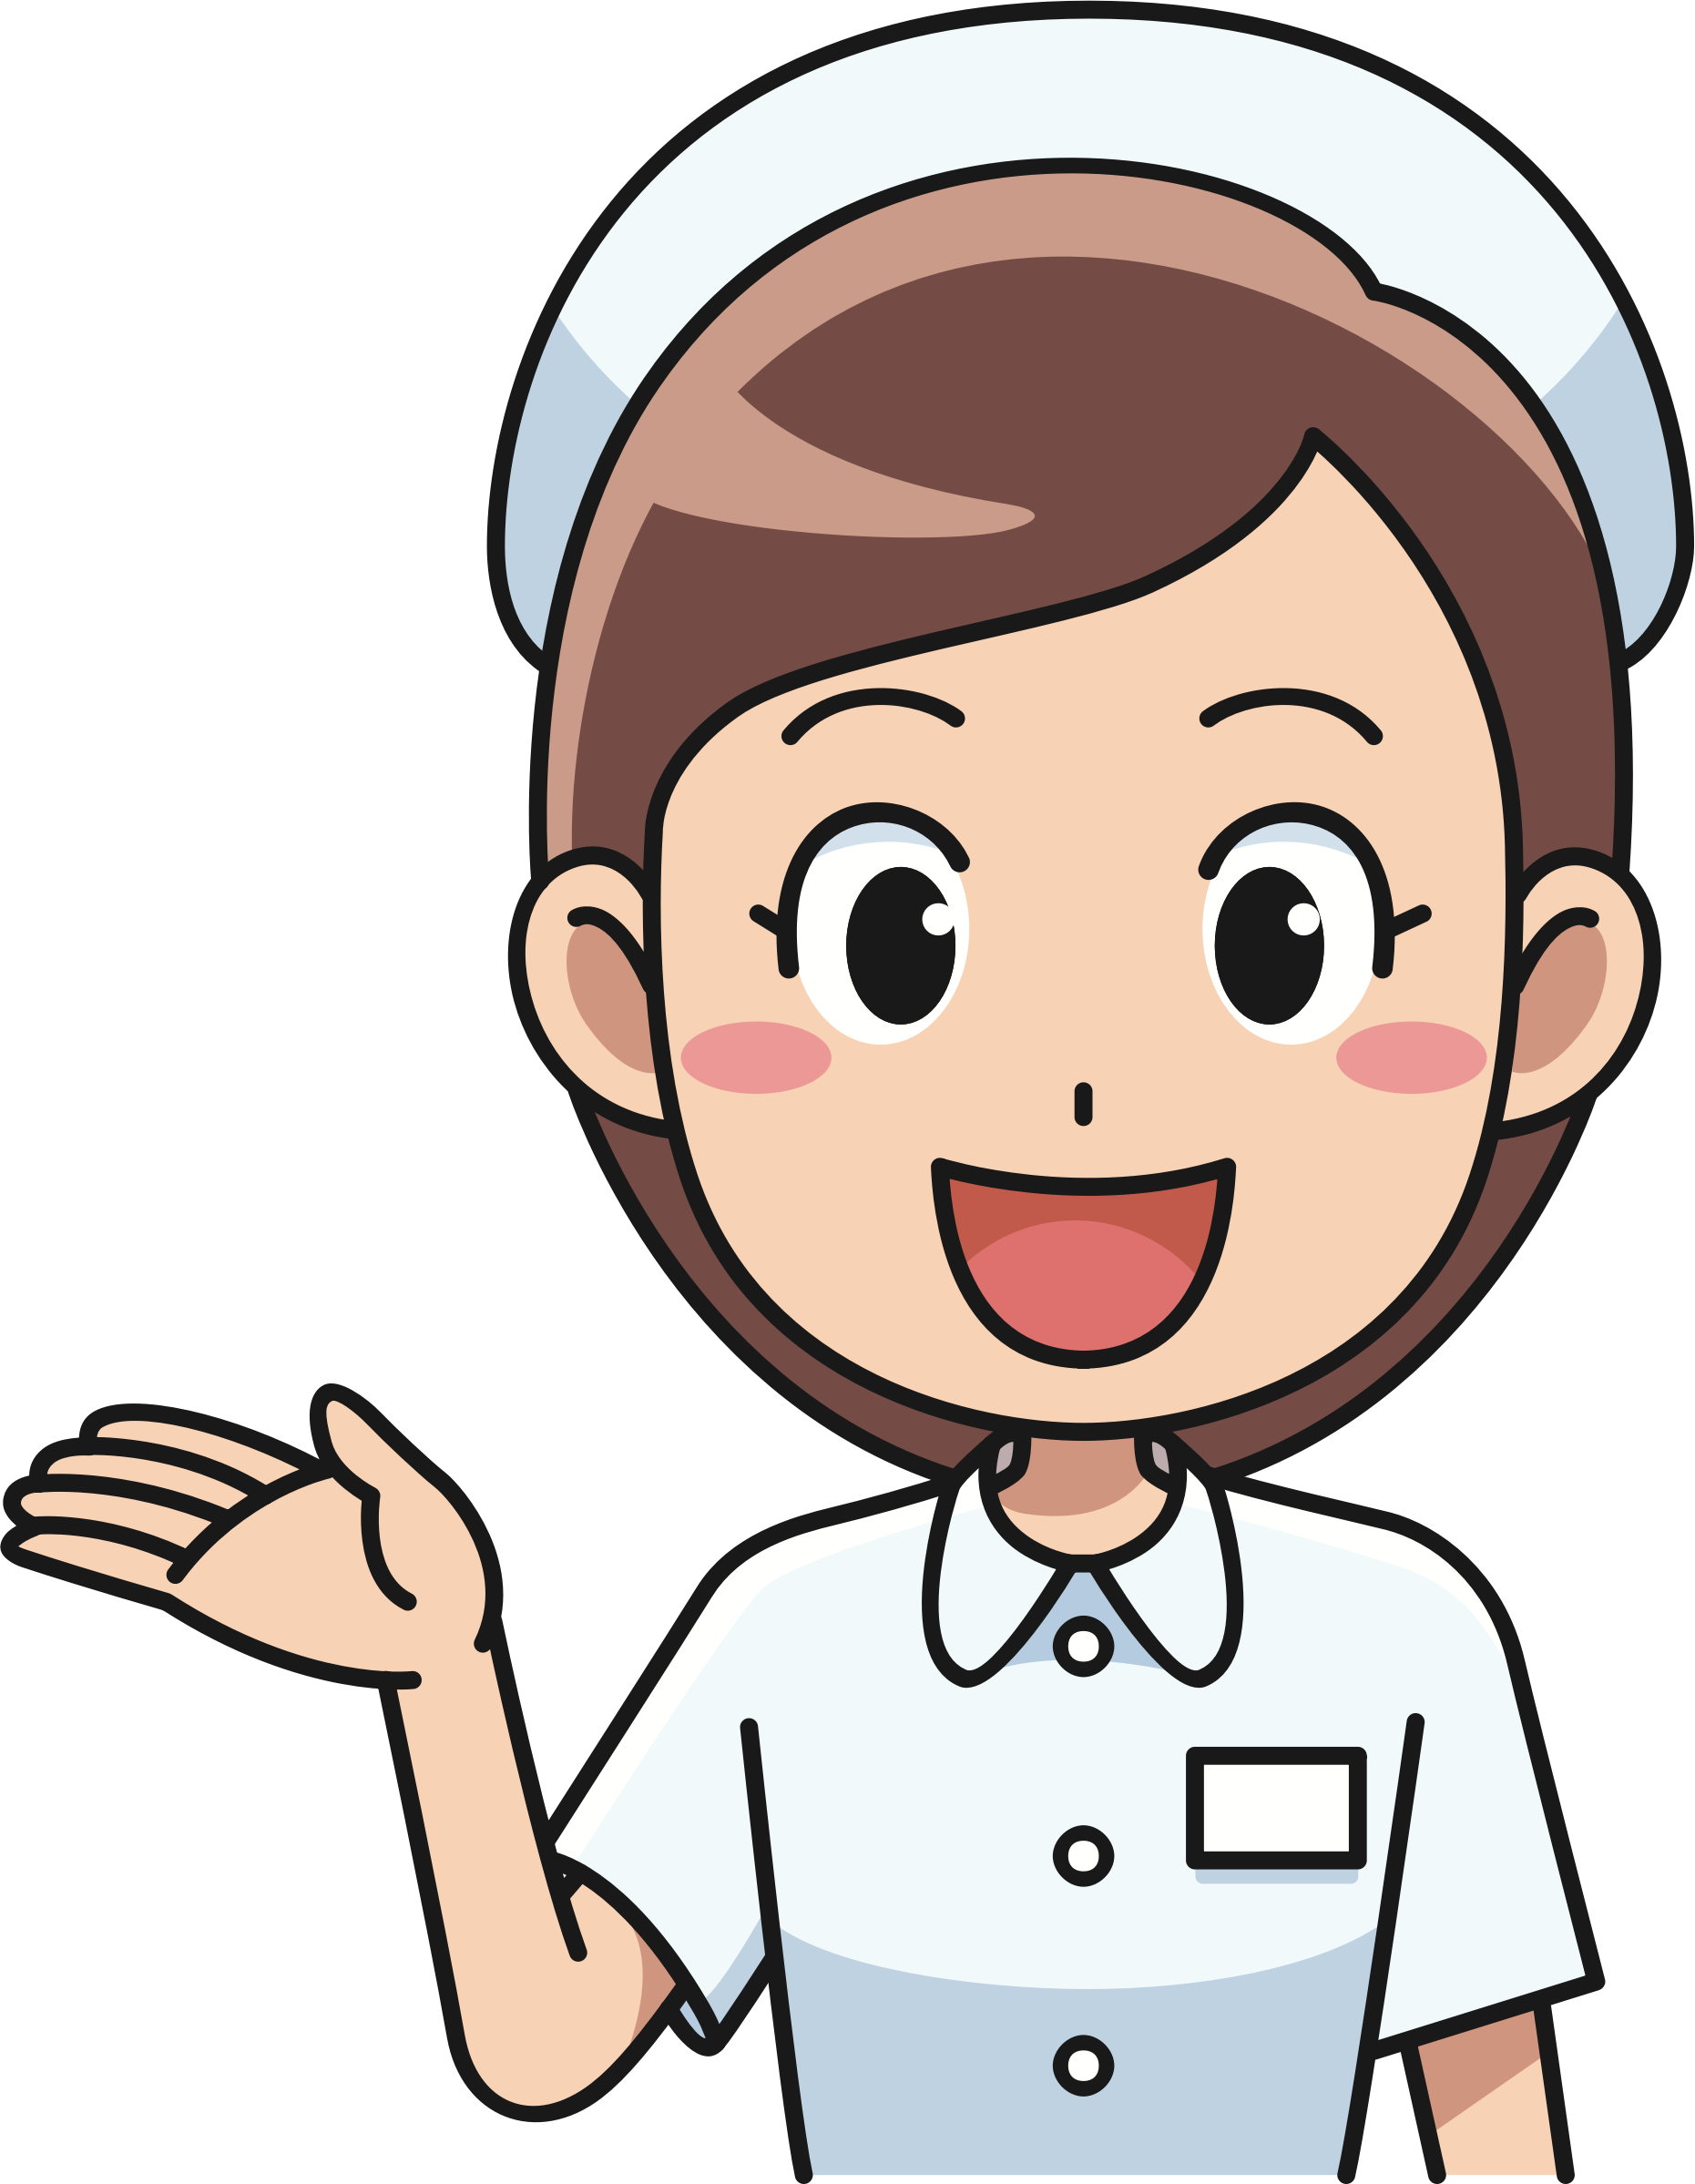 Nurse clipart. Surging nurses cartoon images